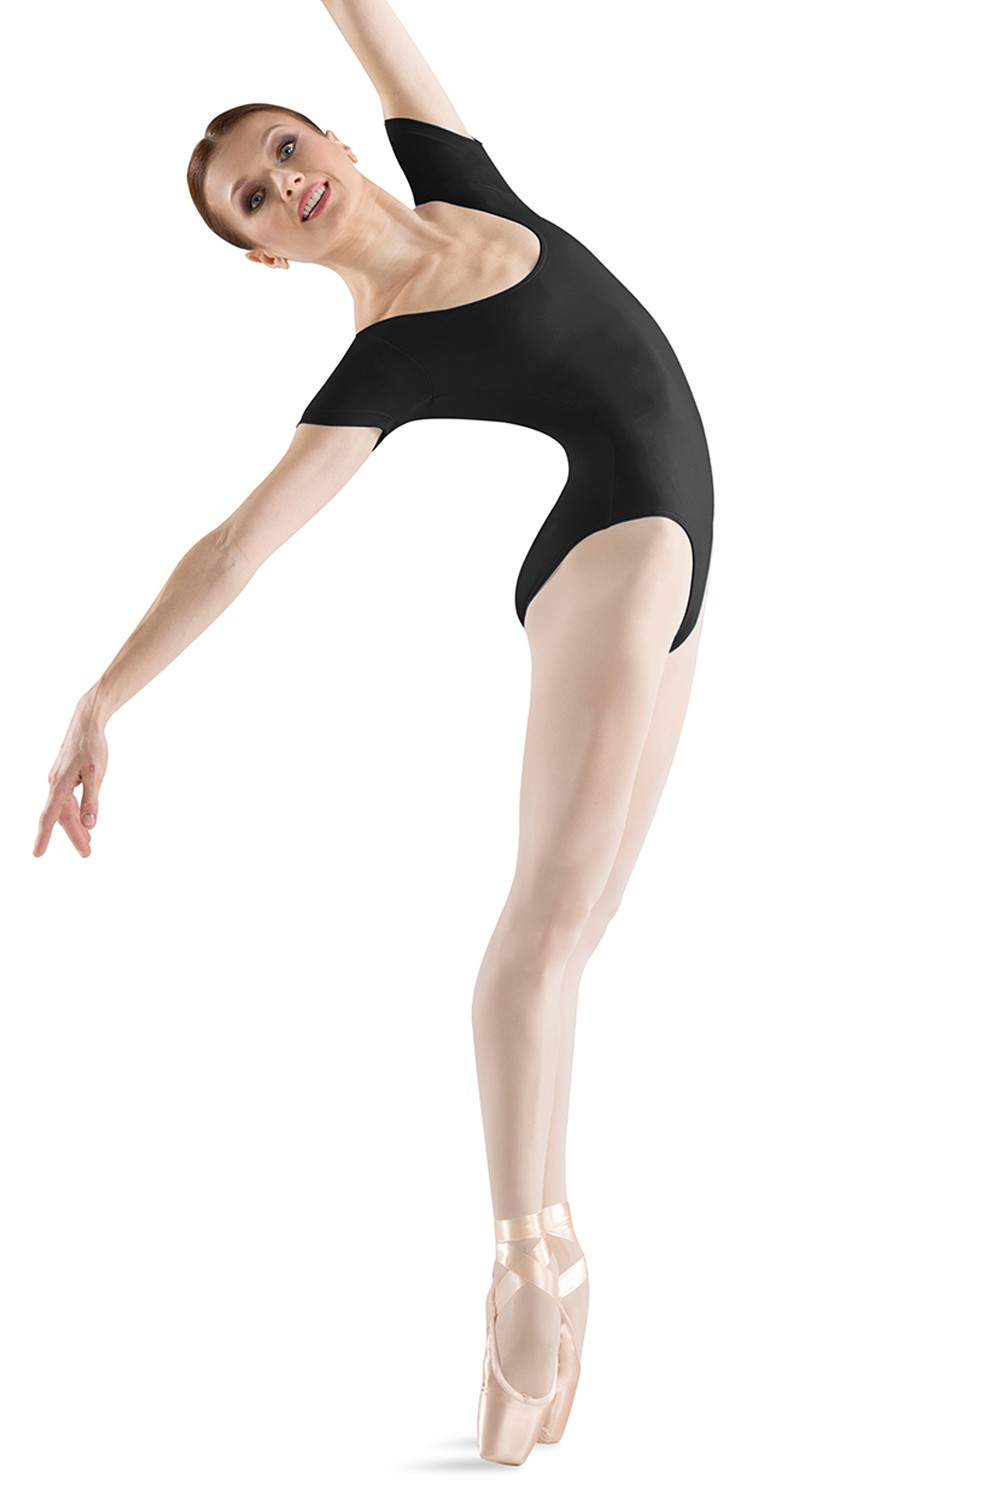 e903520ab043 Elegant Women s Ballet   Dance Leotards - BLOCH® US Store